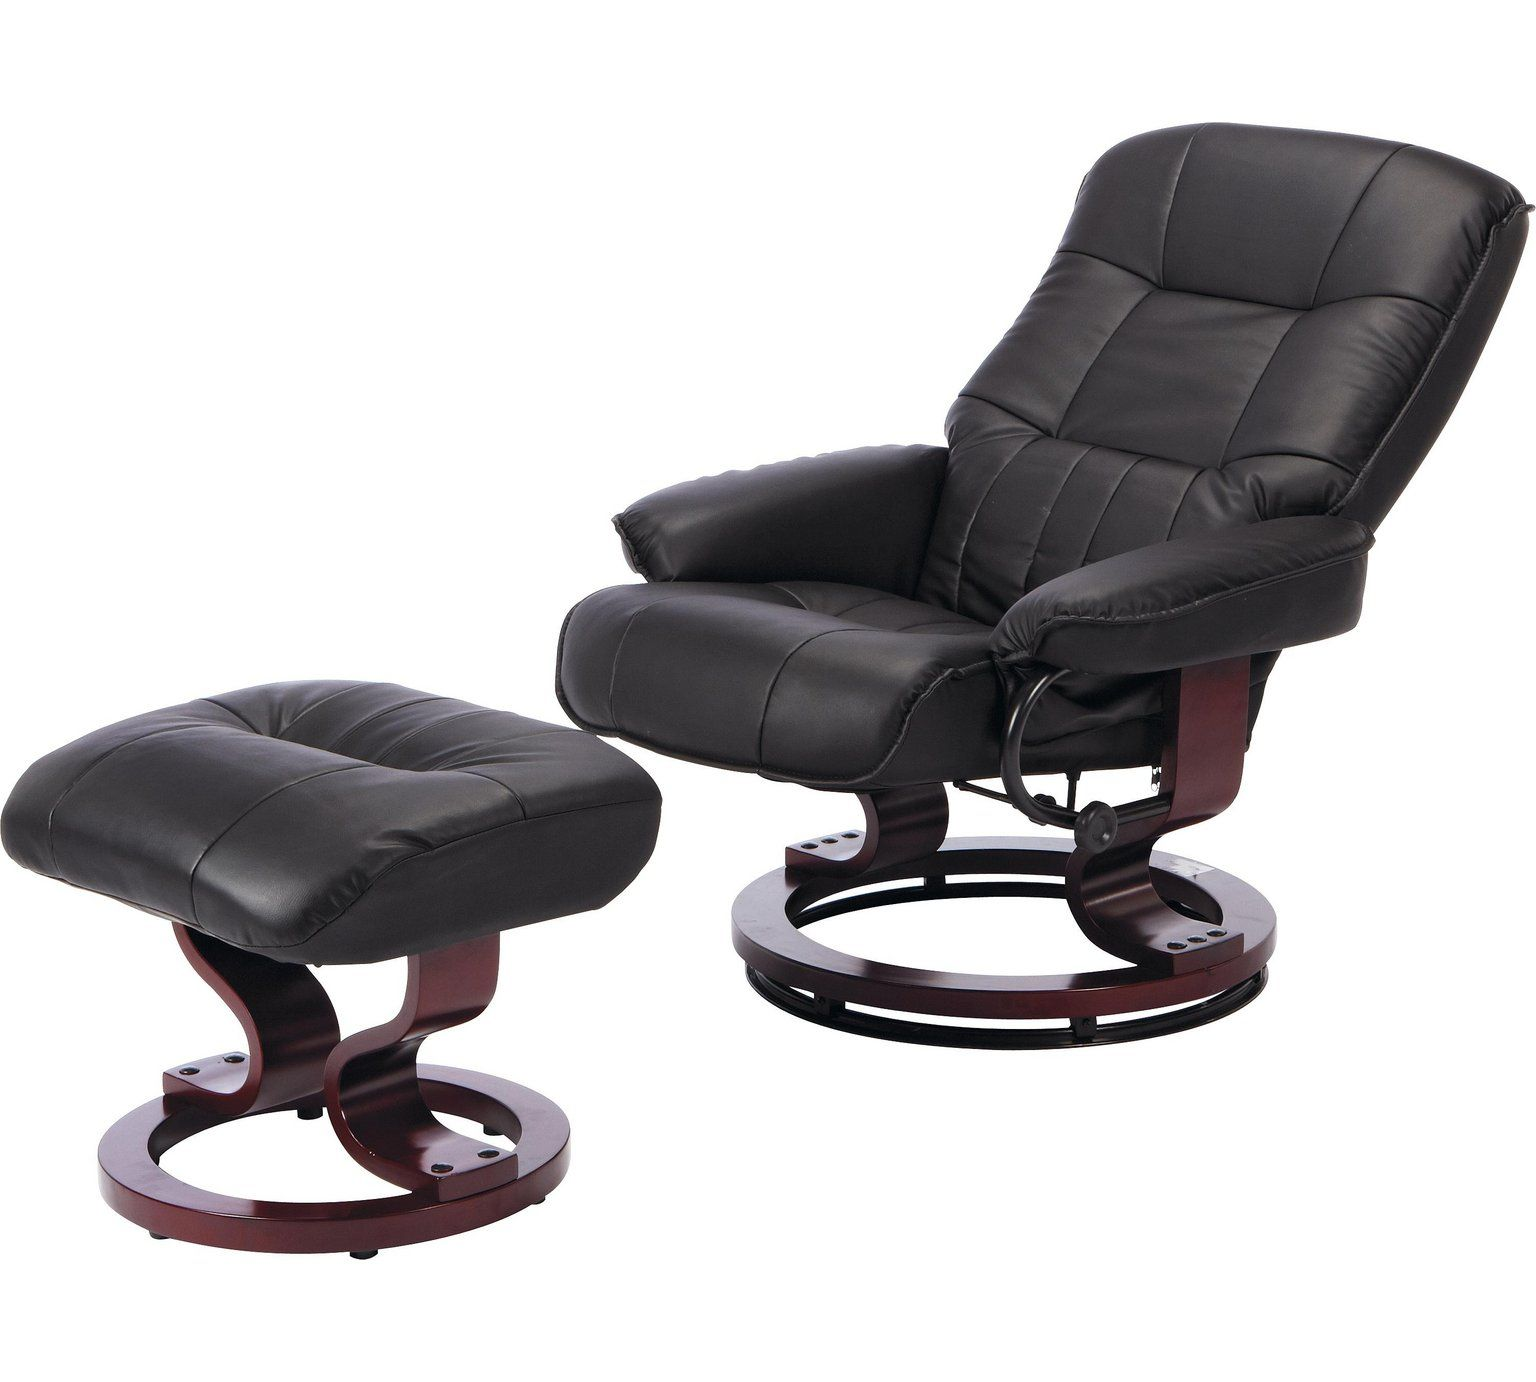 Buy Argos Home Santos Recliner Chair and Footstool - Black ...